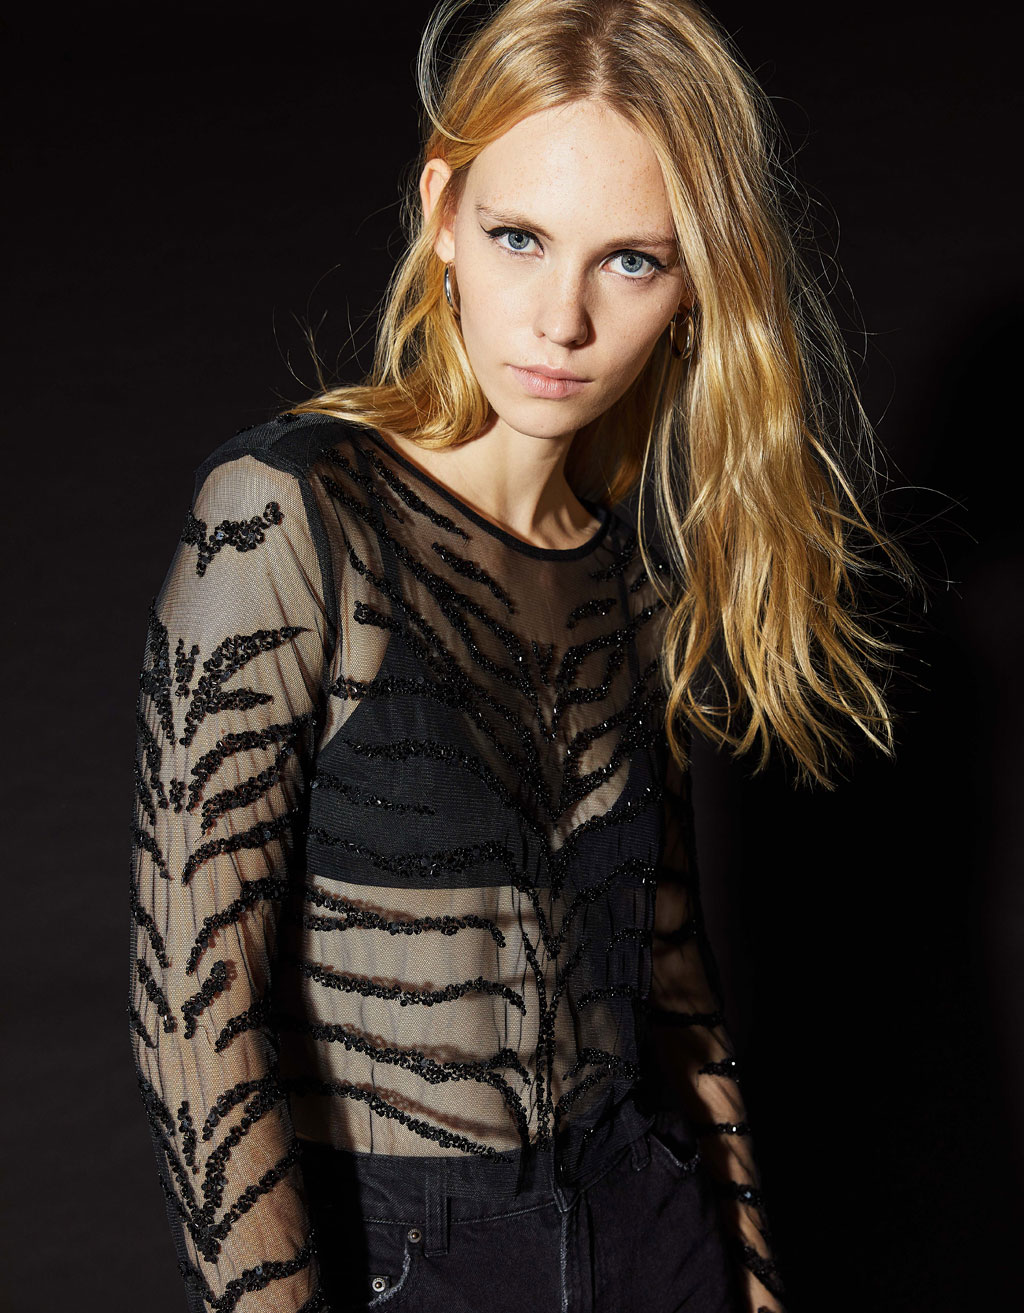 Top with sequined zebra-stripe embroidery